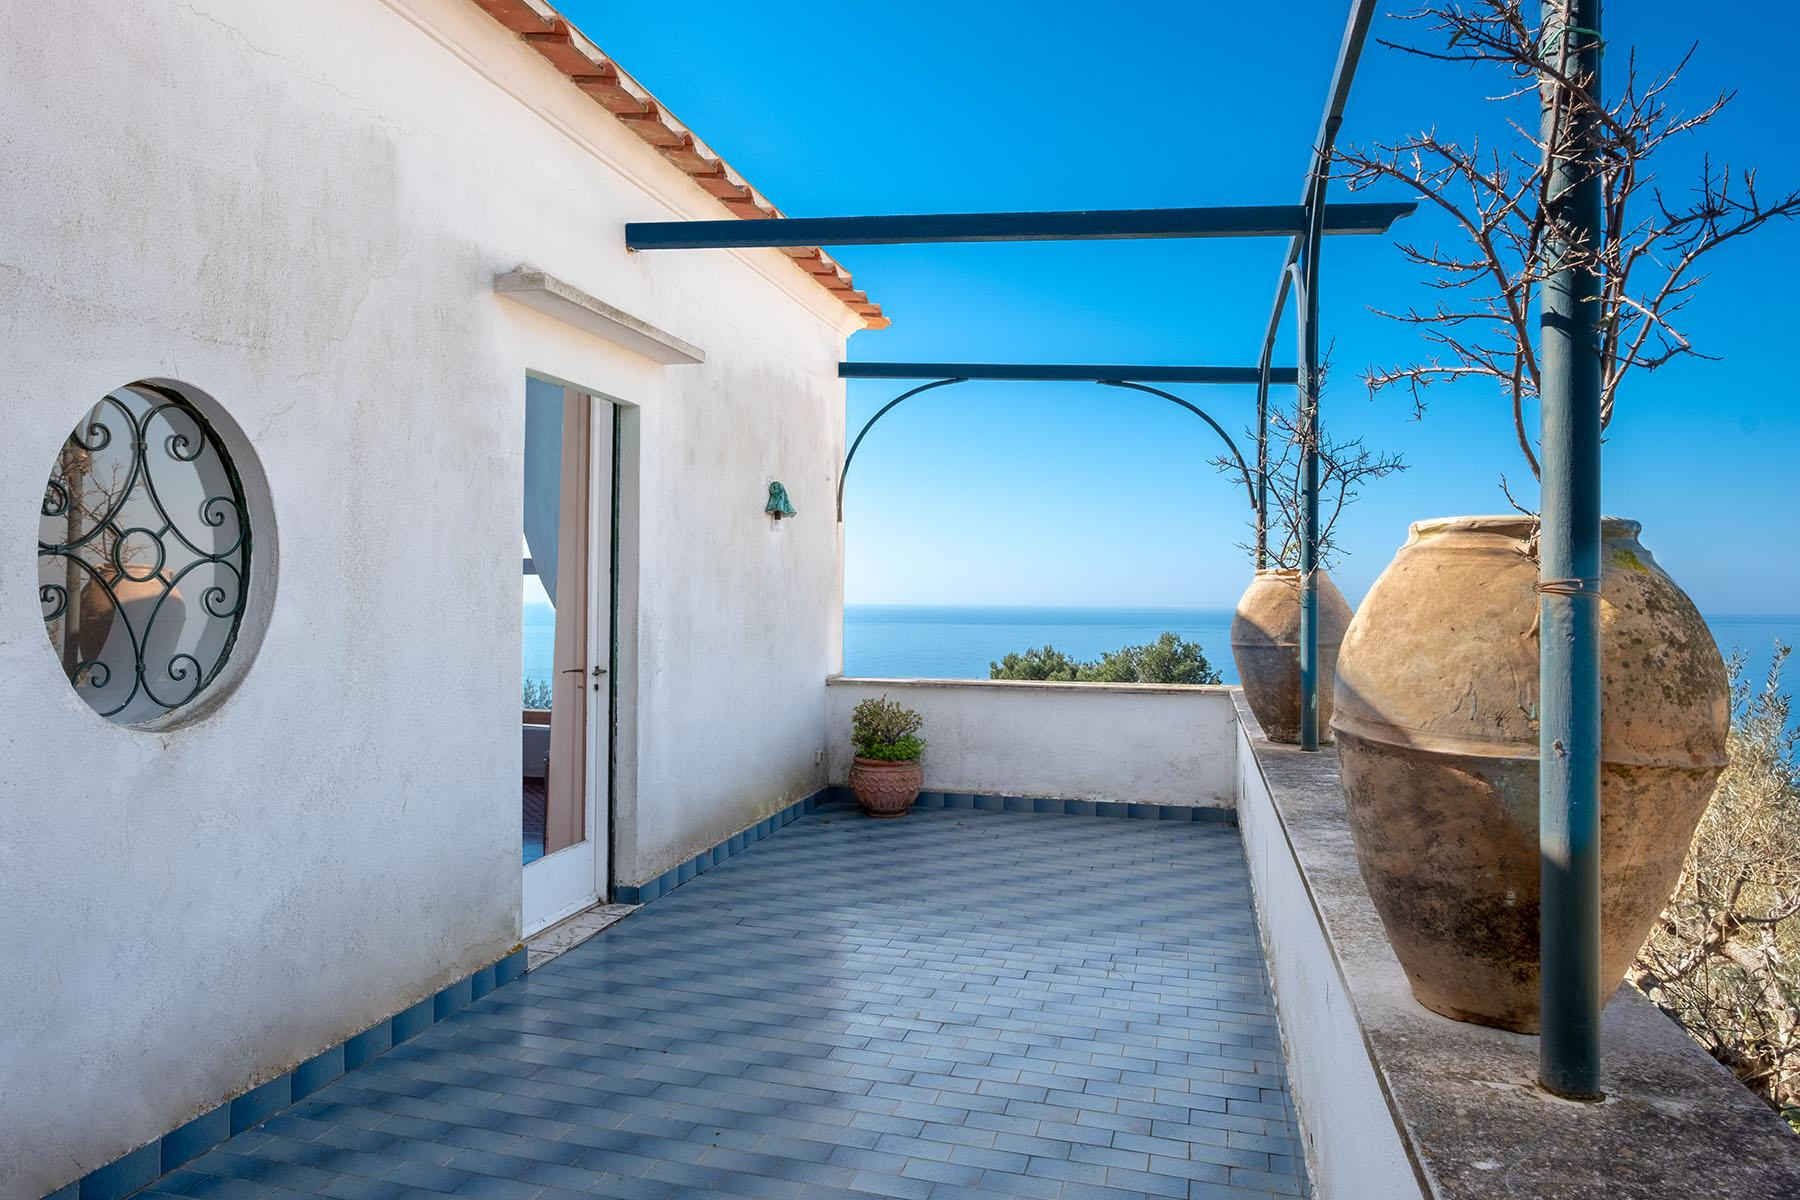 Wonderful villa with garden and seaview in Anacapri - 8